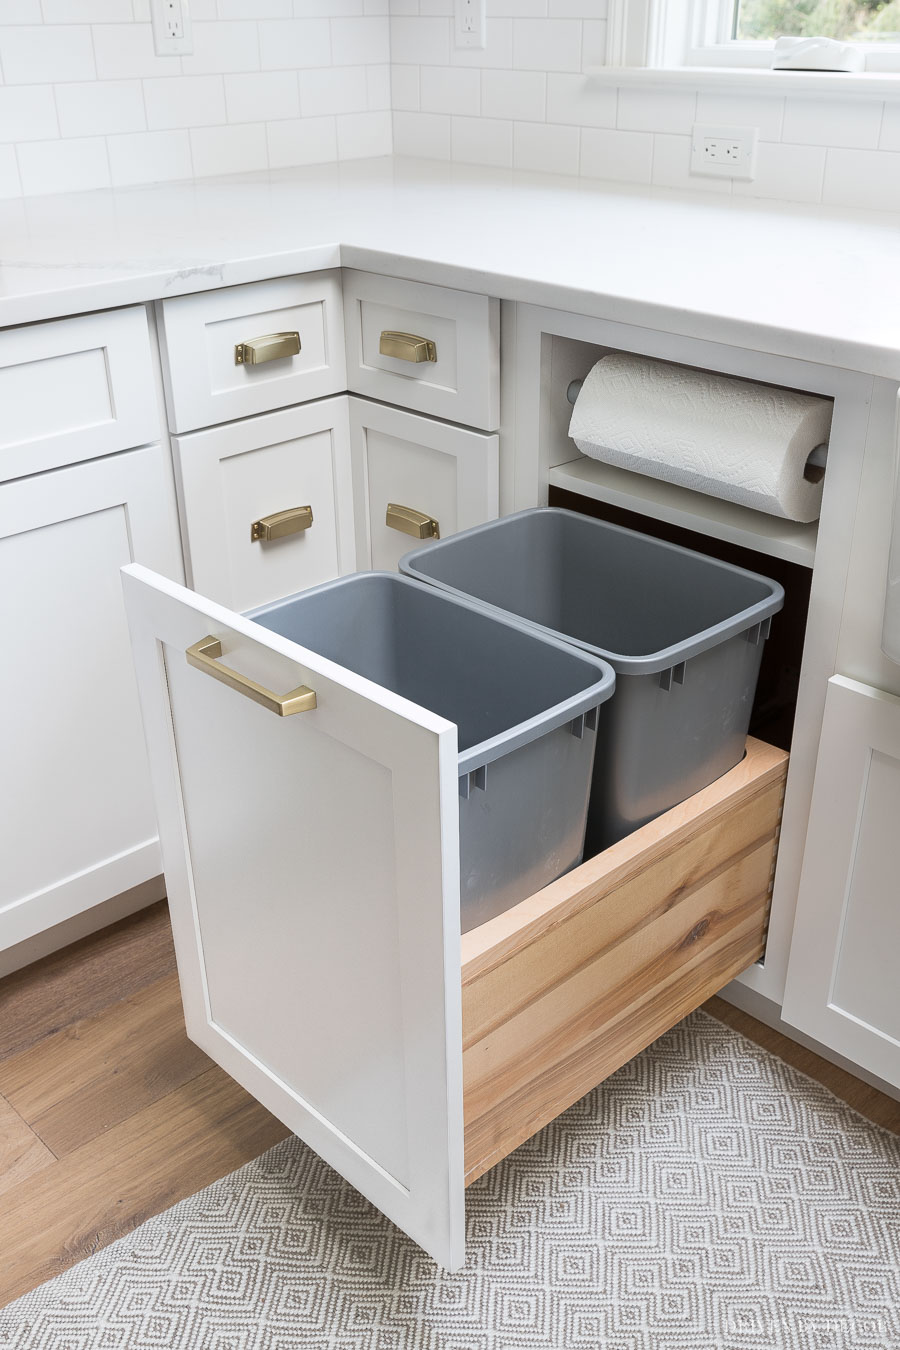 Cabinet Storage Organization Ideas